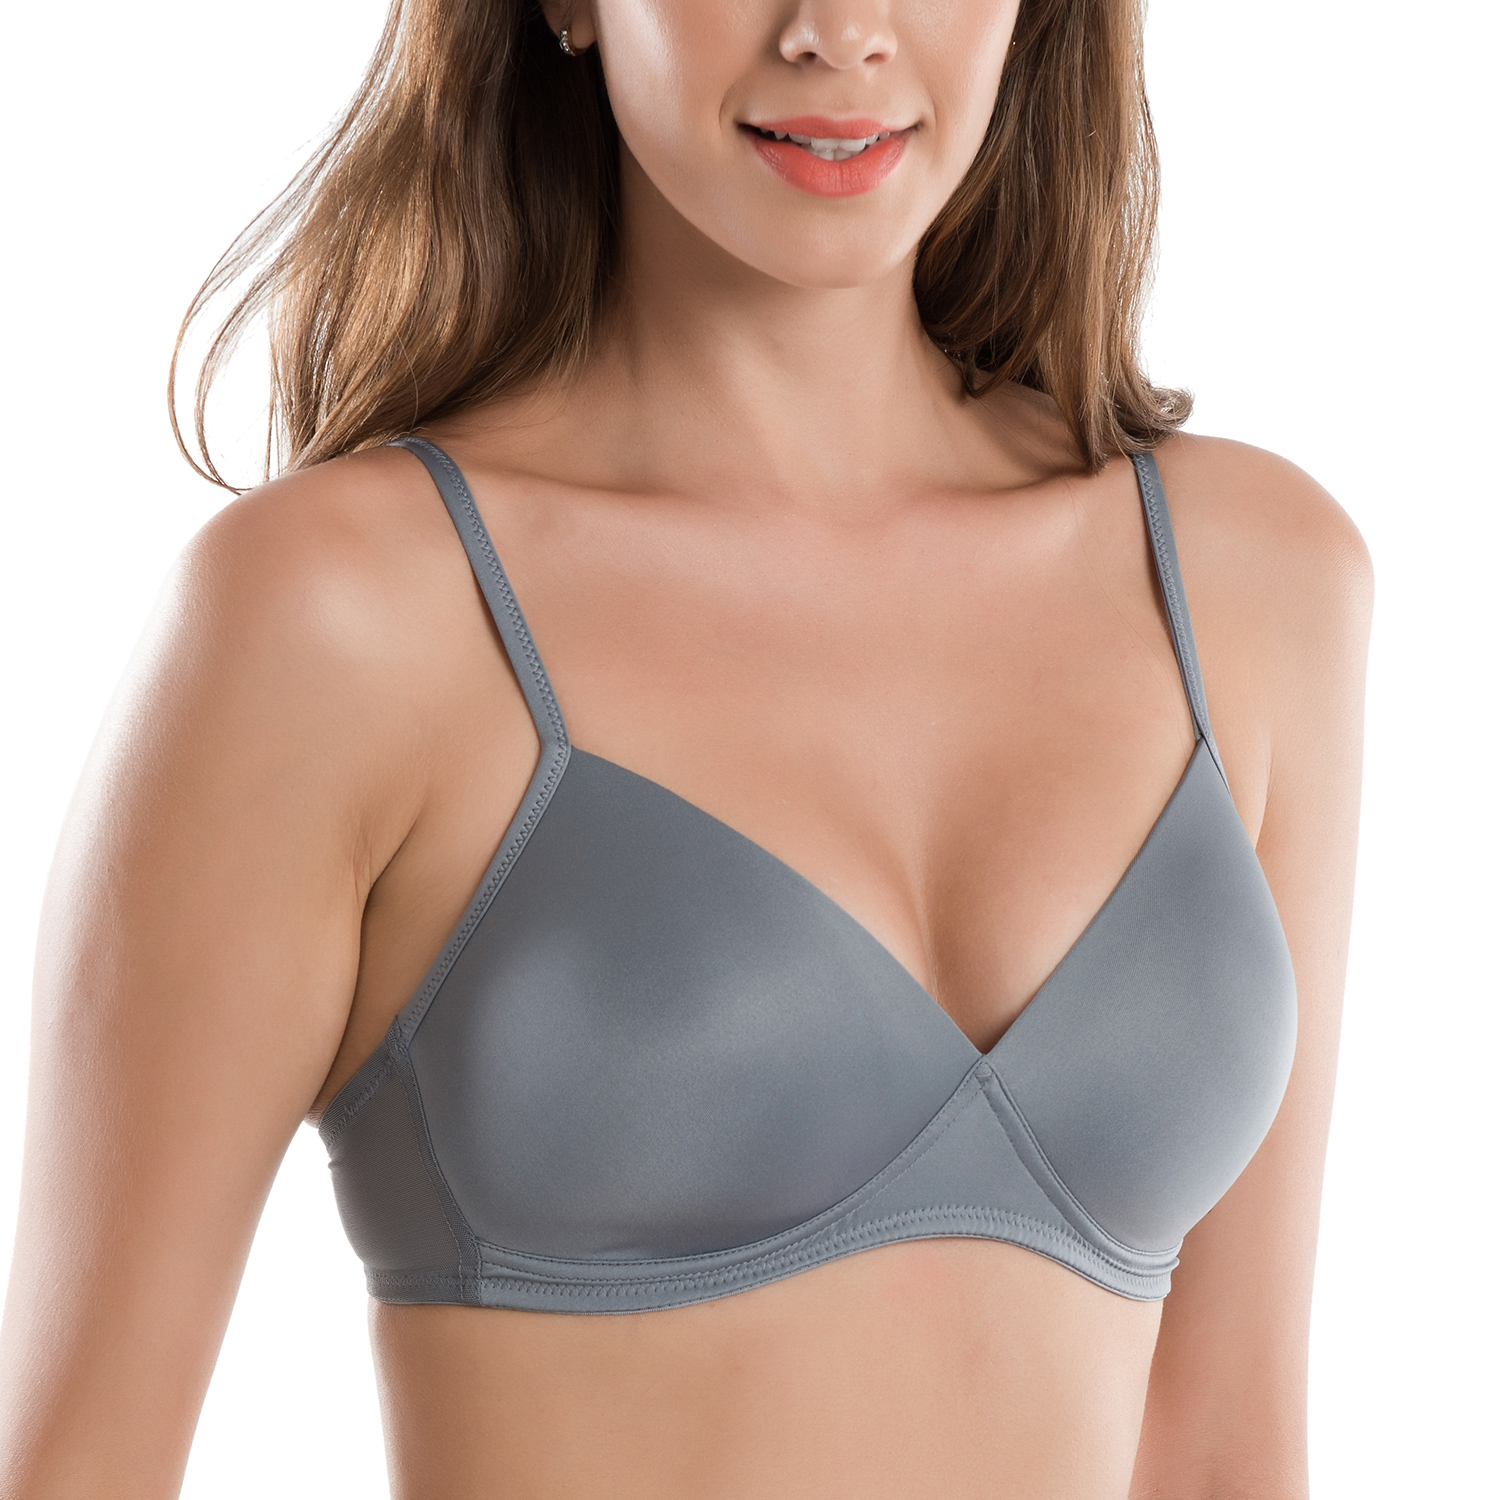 df780af32e6 Women s Wirefree Full Coverage Triangle Contour T shirt Bra-in Bras ...